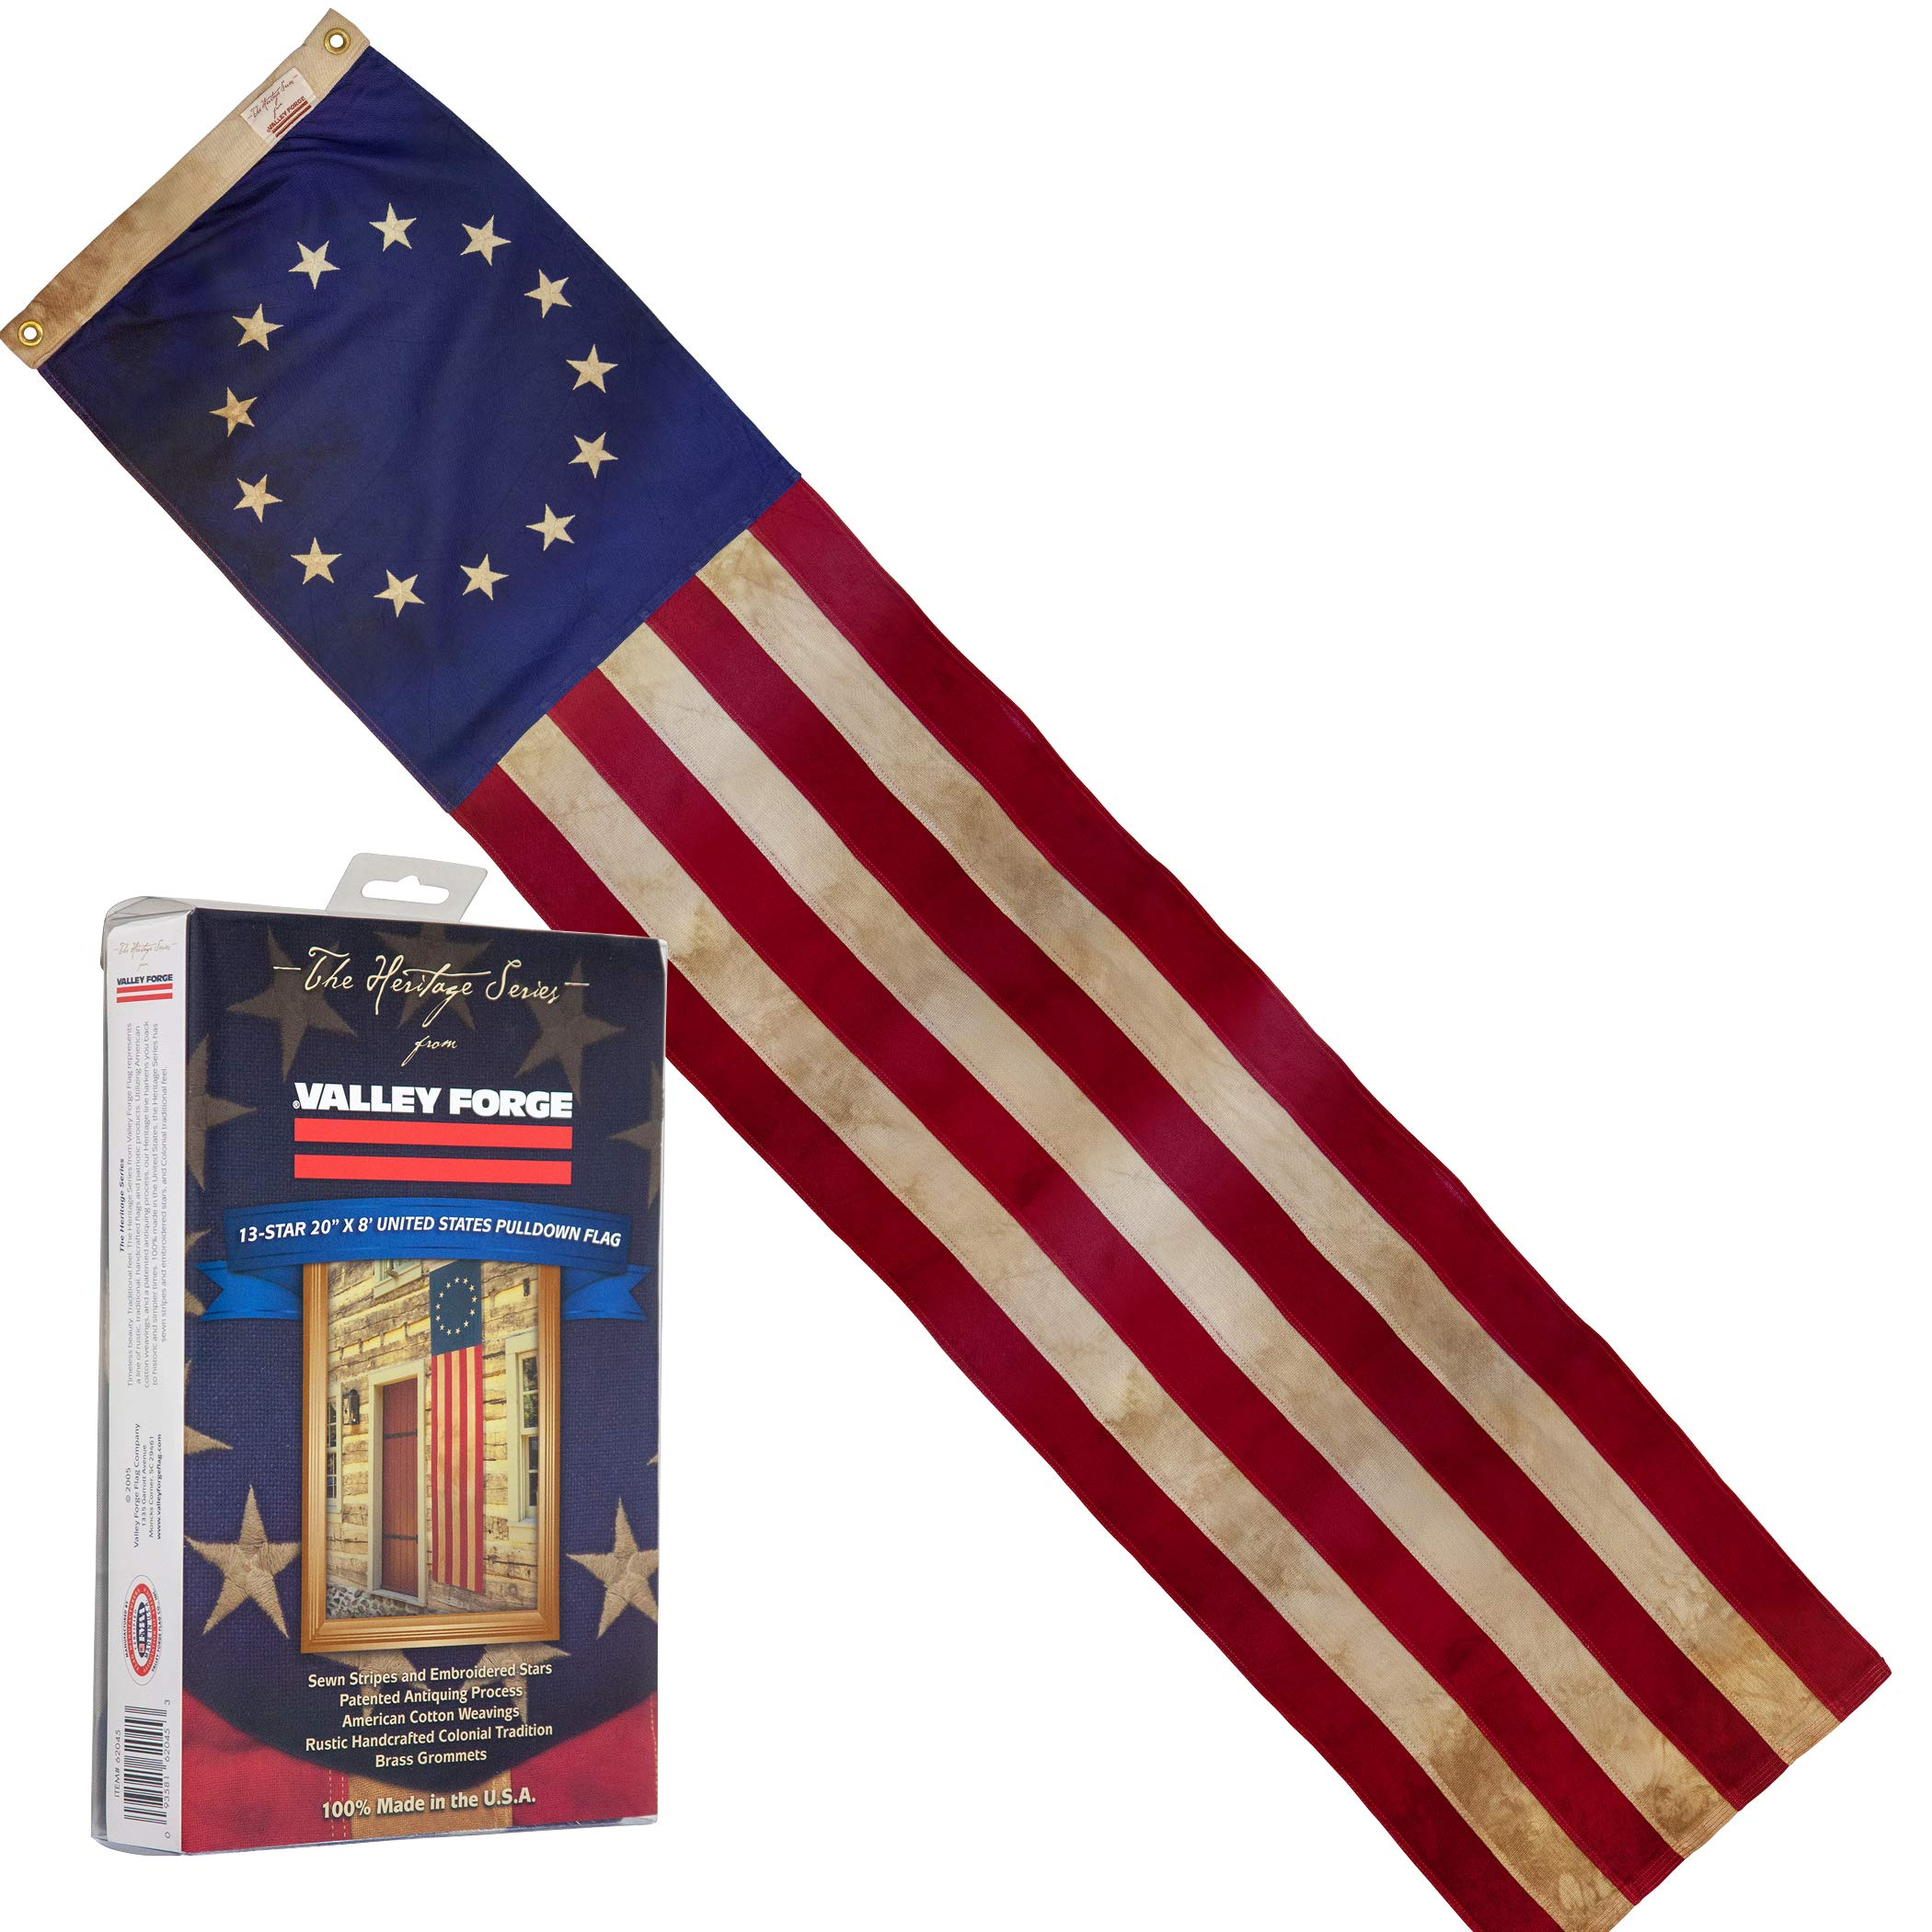 Valley Forge, American Flag Pull-Down, 8', 100% Made in USA, Sewn Stripes and Embroirdered Stars by Valley Forge